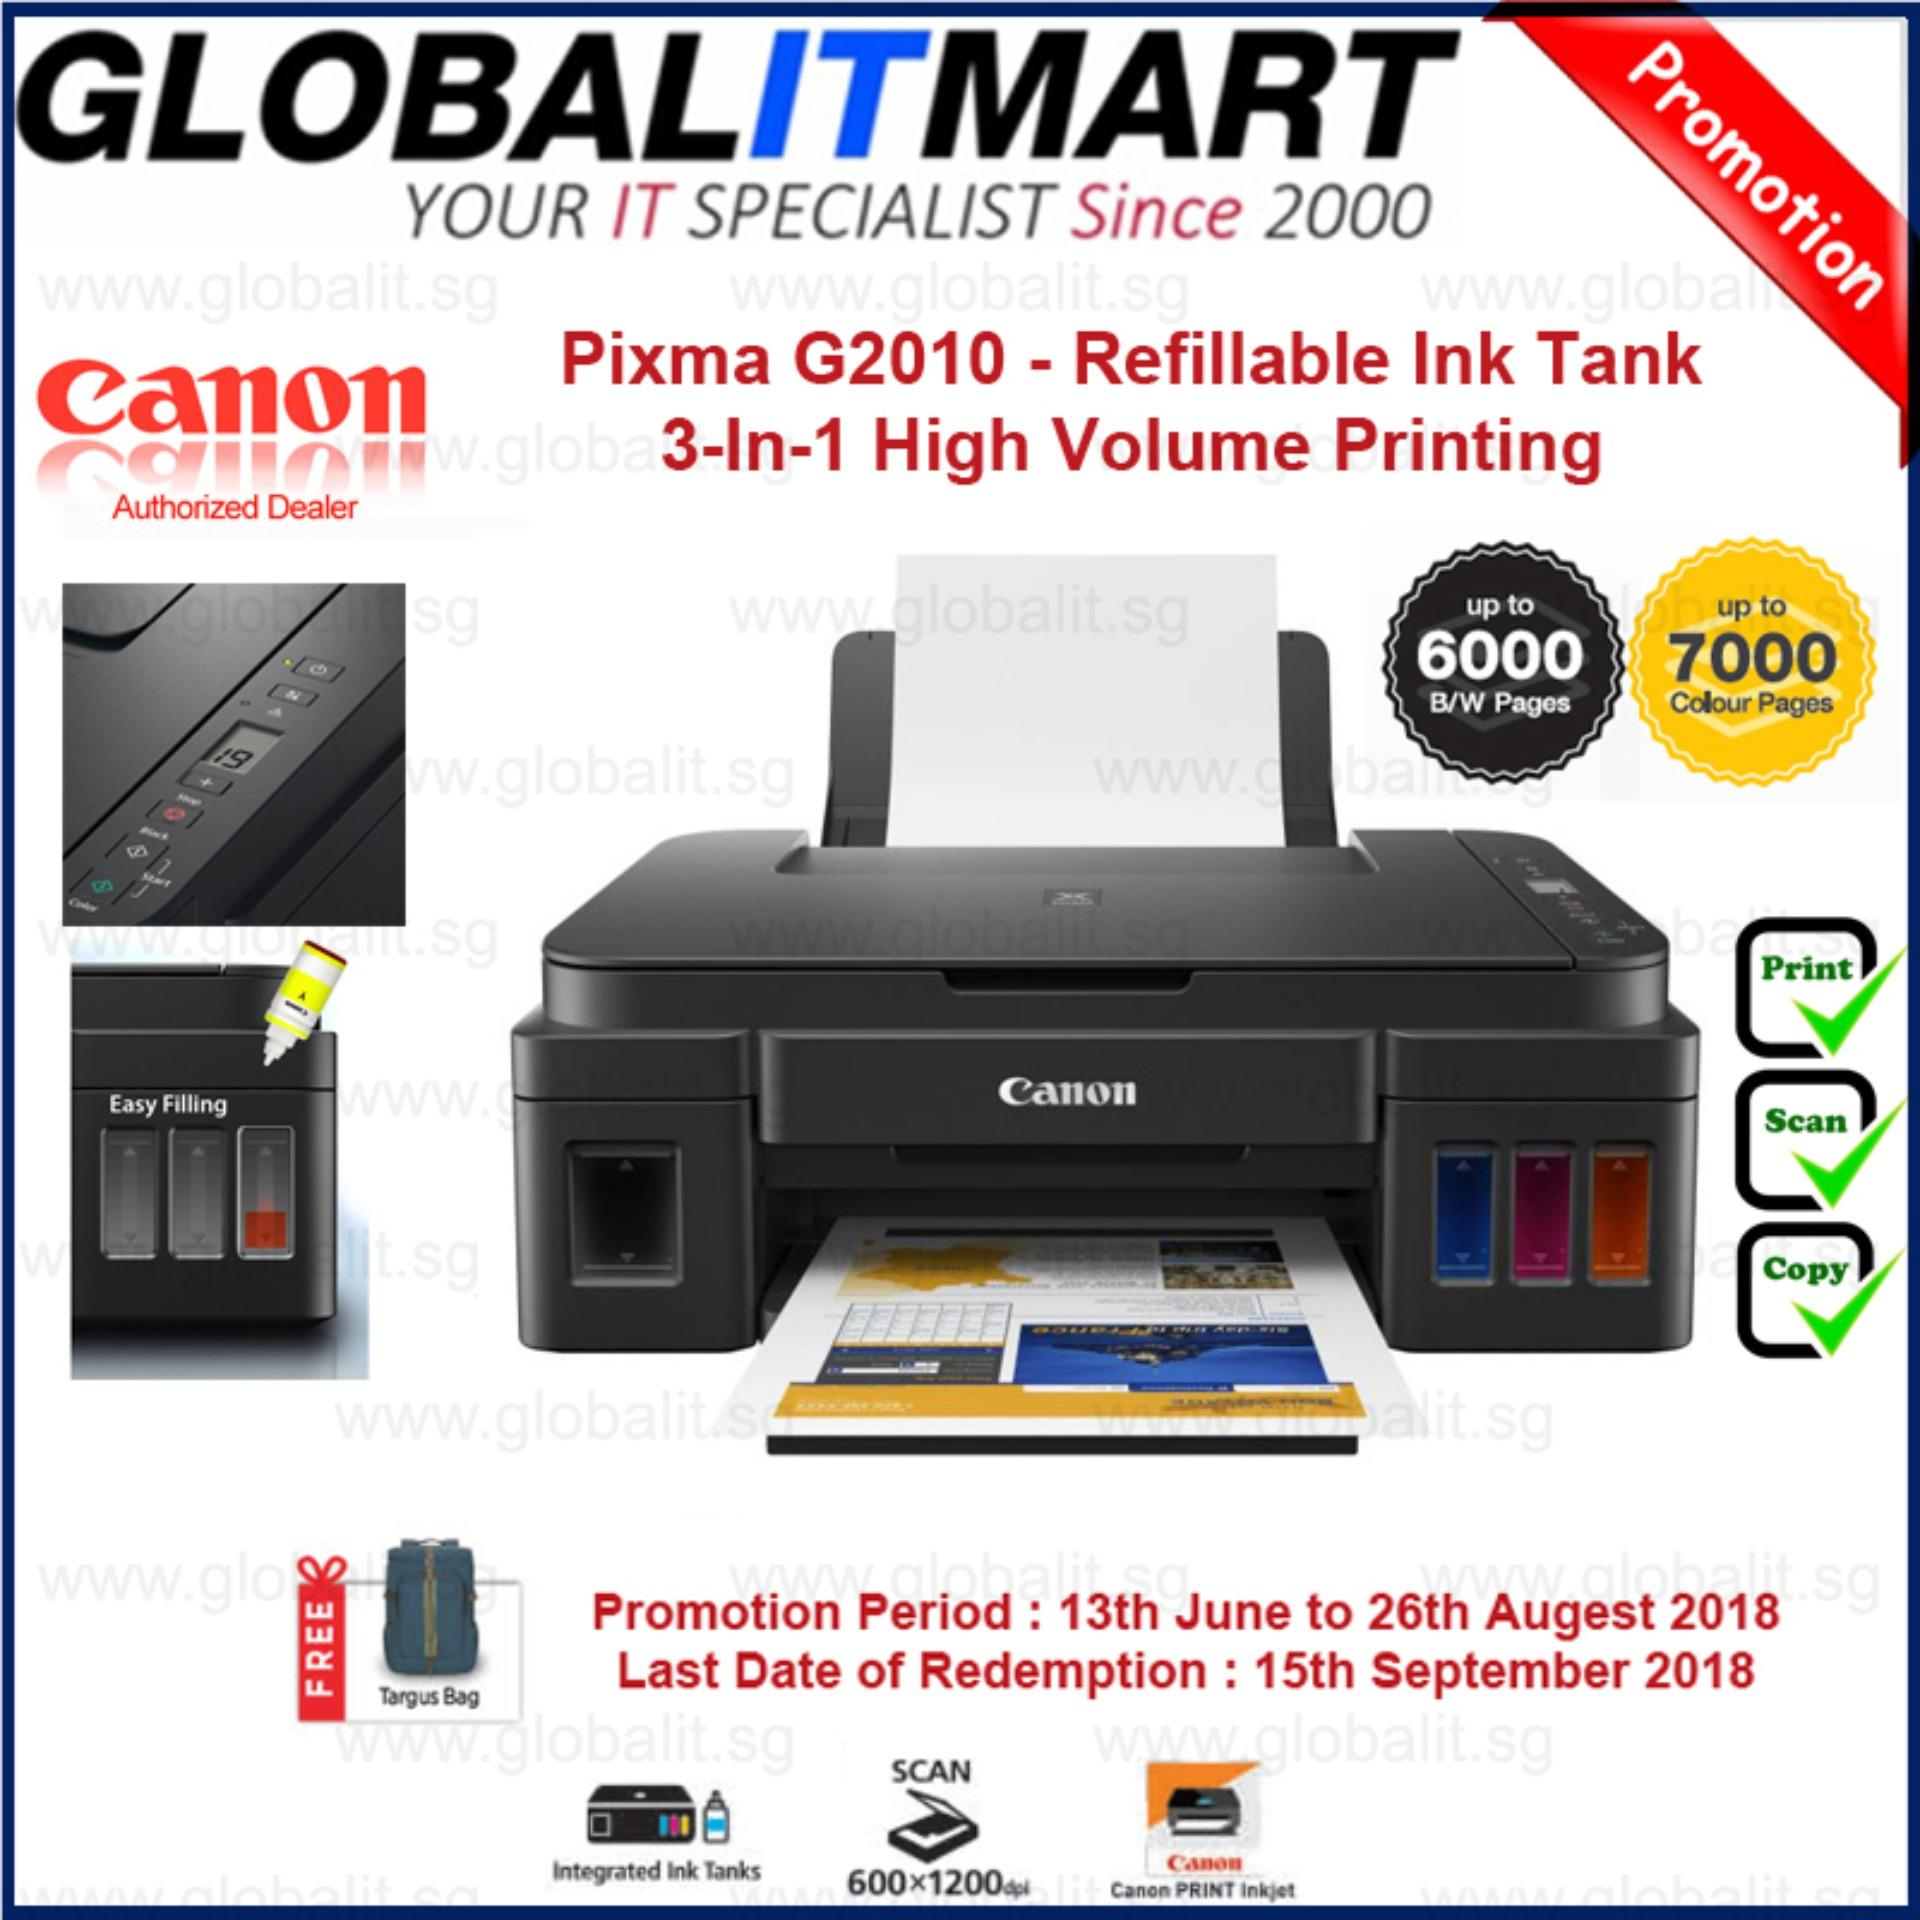 Canon Pixma G2010 NEW! Refillable Ink Tank 3-In-1 High Volume Printing (Mac  OS is not supported) Singapore